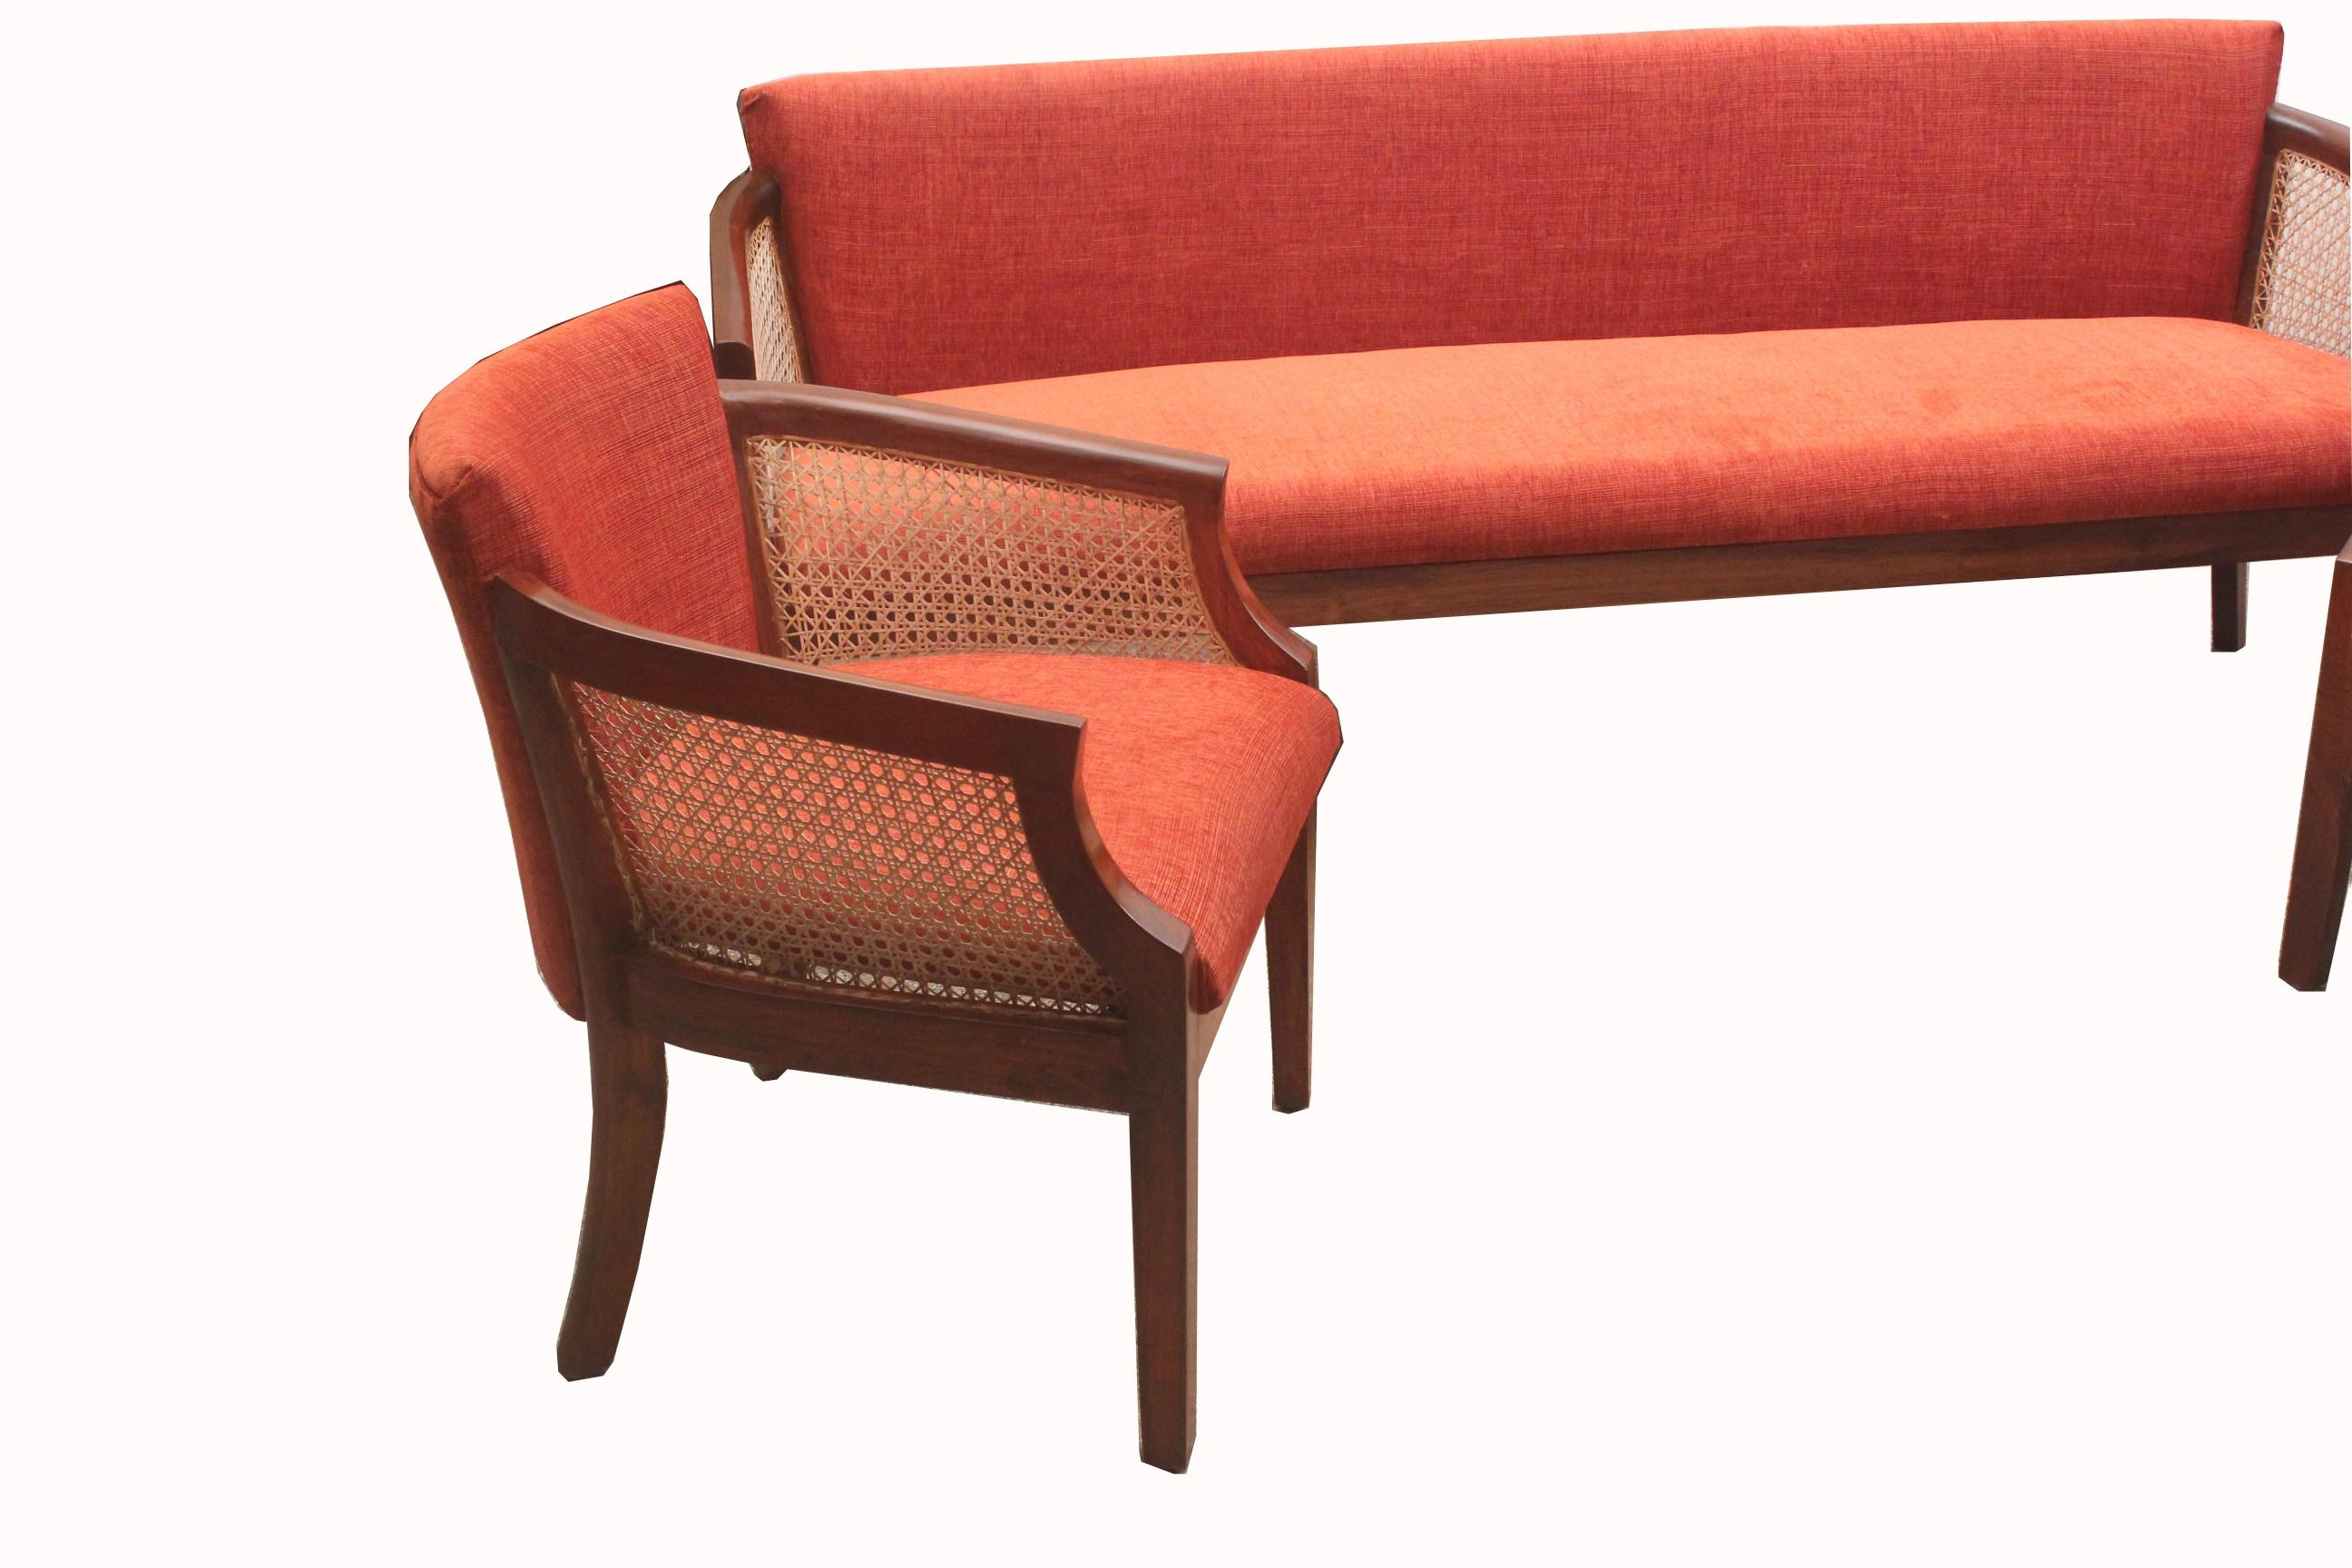 Teakwood Cushion Cane Sofa Set (Ws 98) Details | Bic Furniture India With Regard To Cane Sofas (Image 18 of 20)